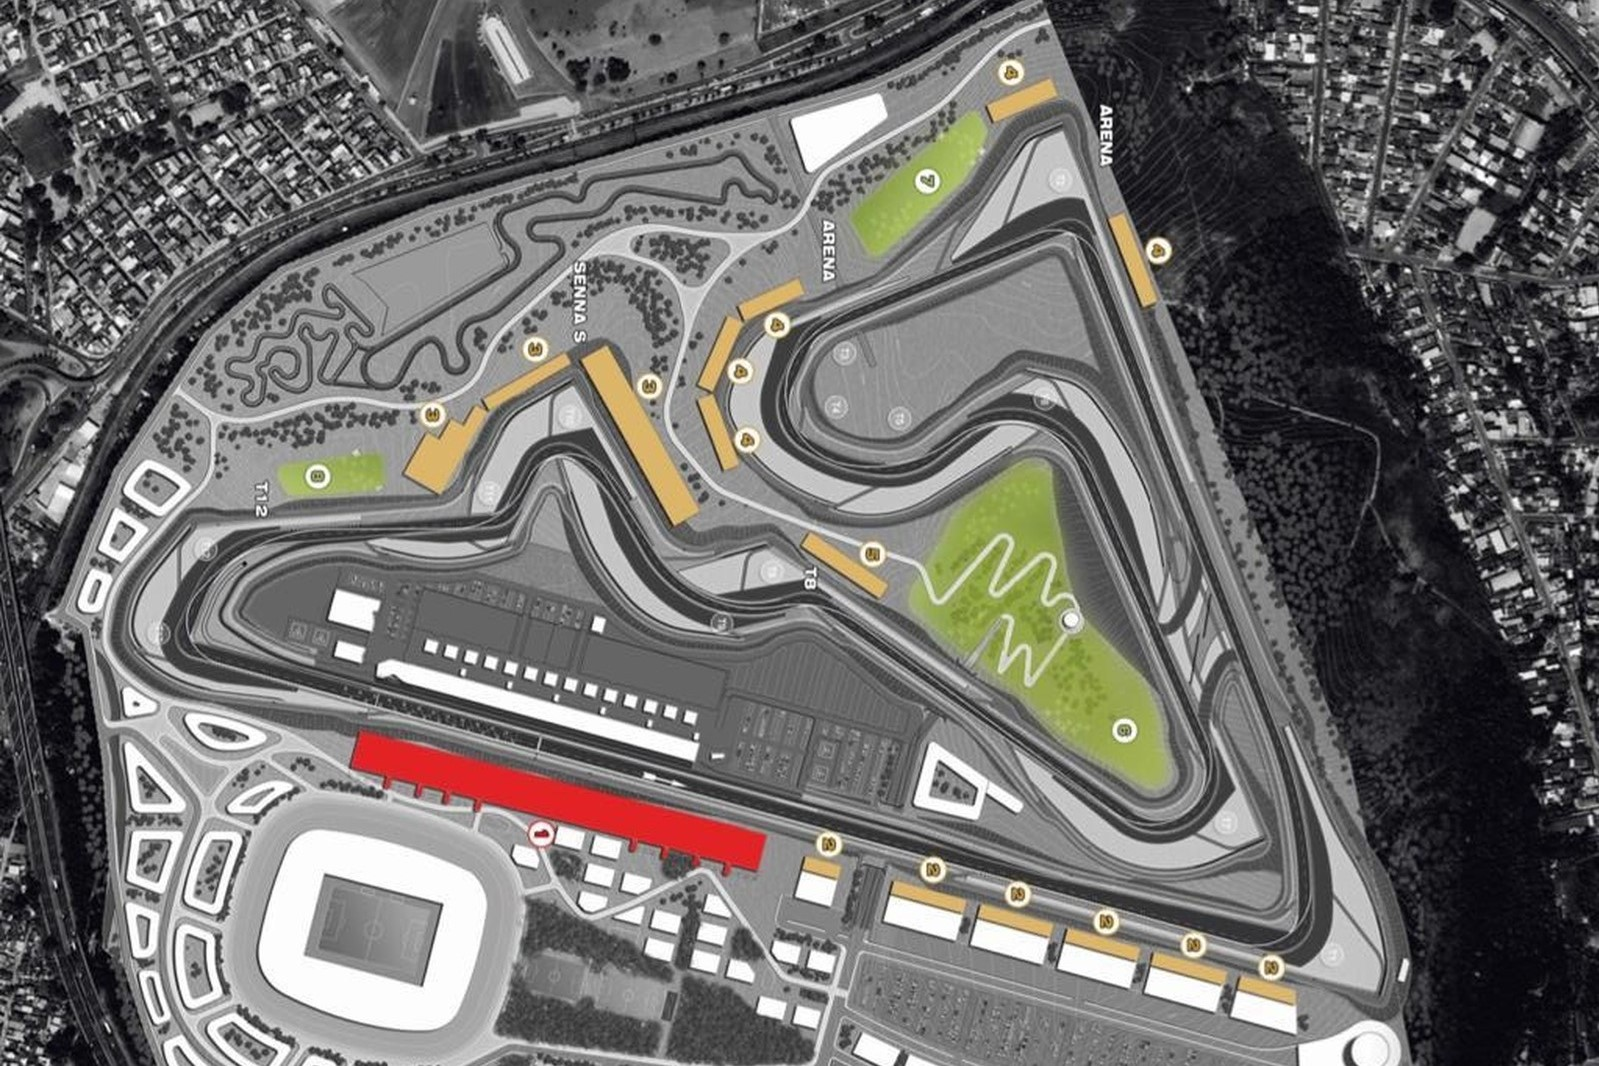 Tender awarded for potential new Brazilian GP venue in Rio